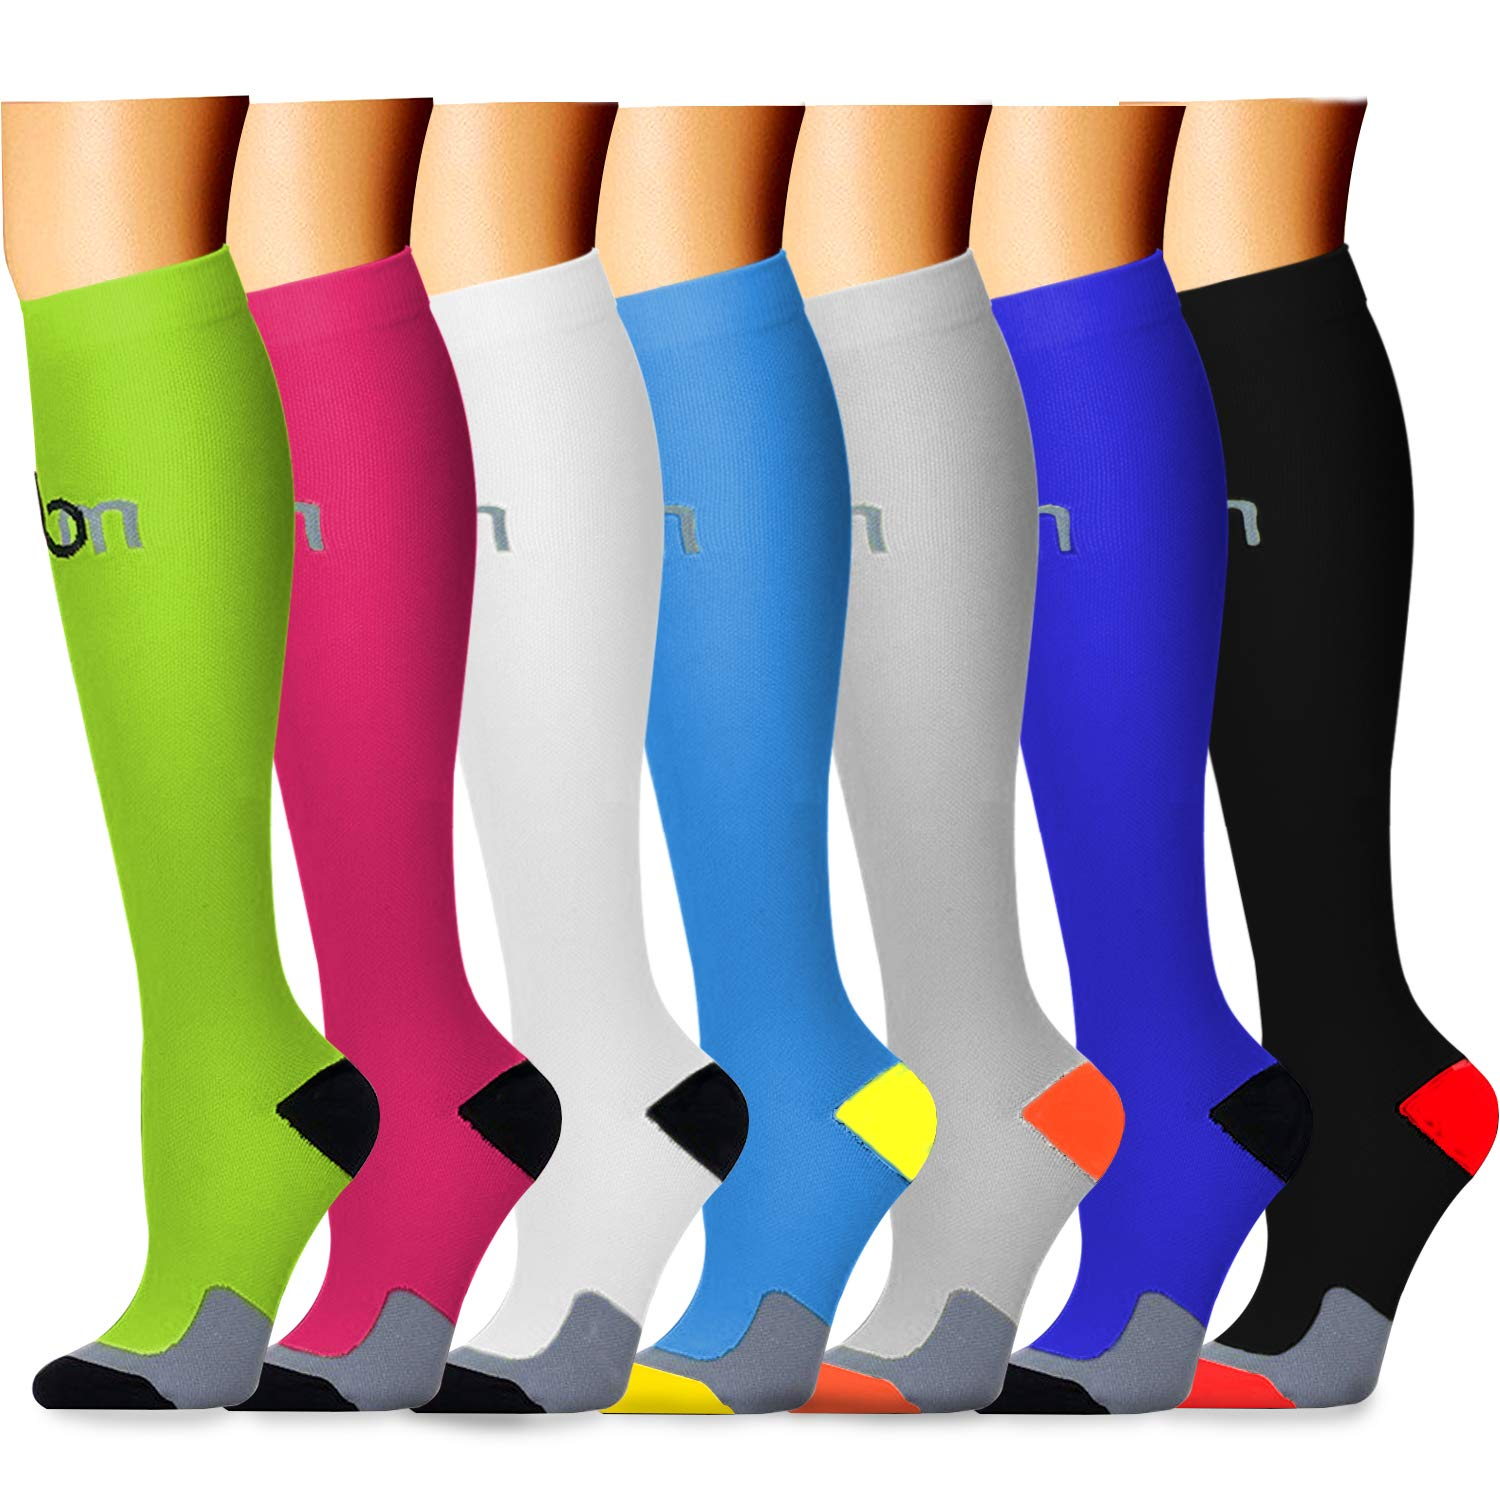 CHARMKING Compression Socks 15-20 mmHg is BEST Graduated Athletic & Medical for Men & Women Running, Travel, Nurses, Pregnant - Boost Performance, Blood Circulation & Recovery(Small/Medium,Assorted19) by CHARMKING